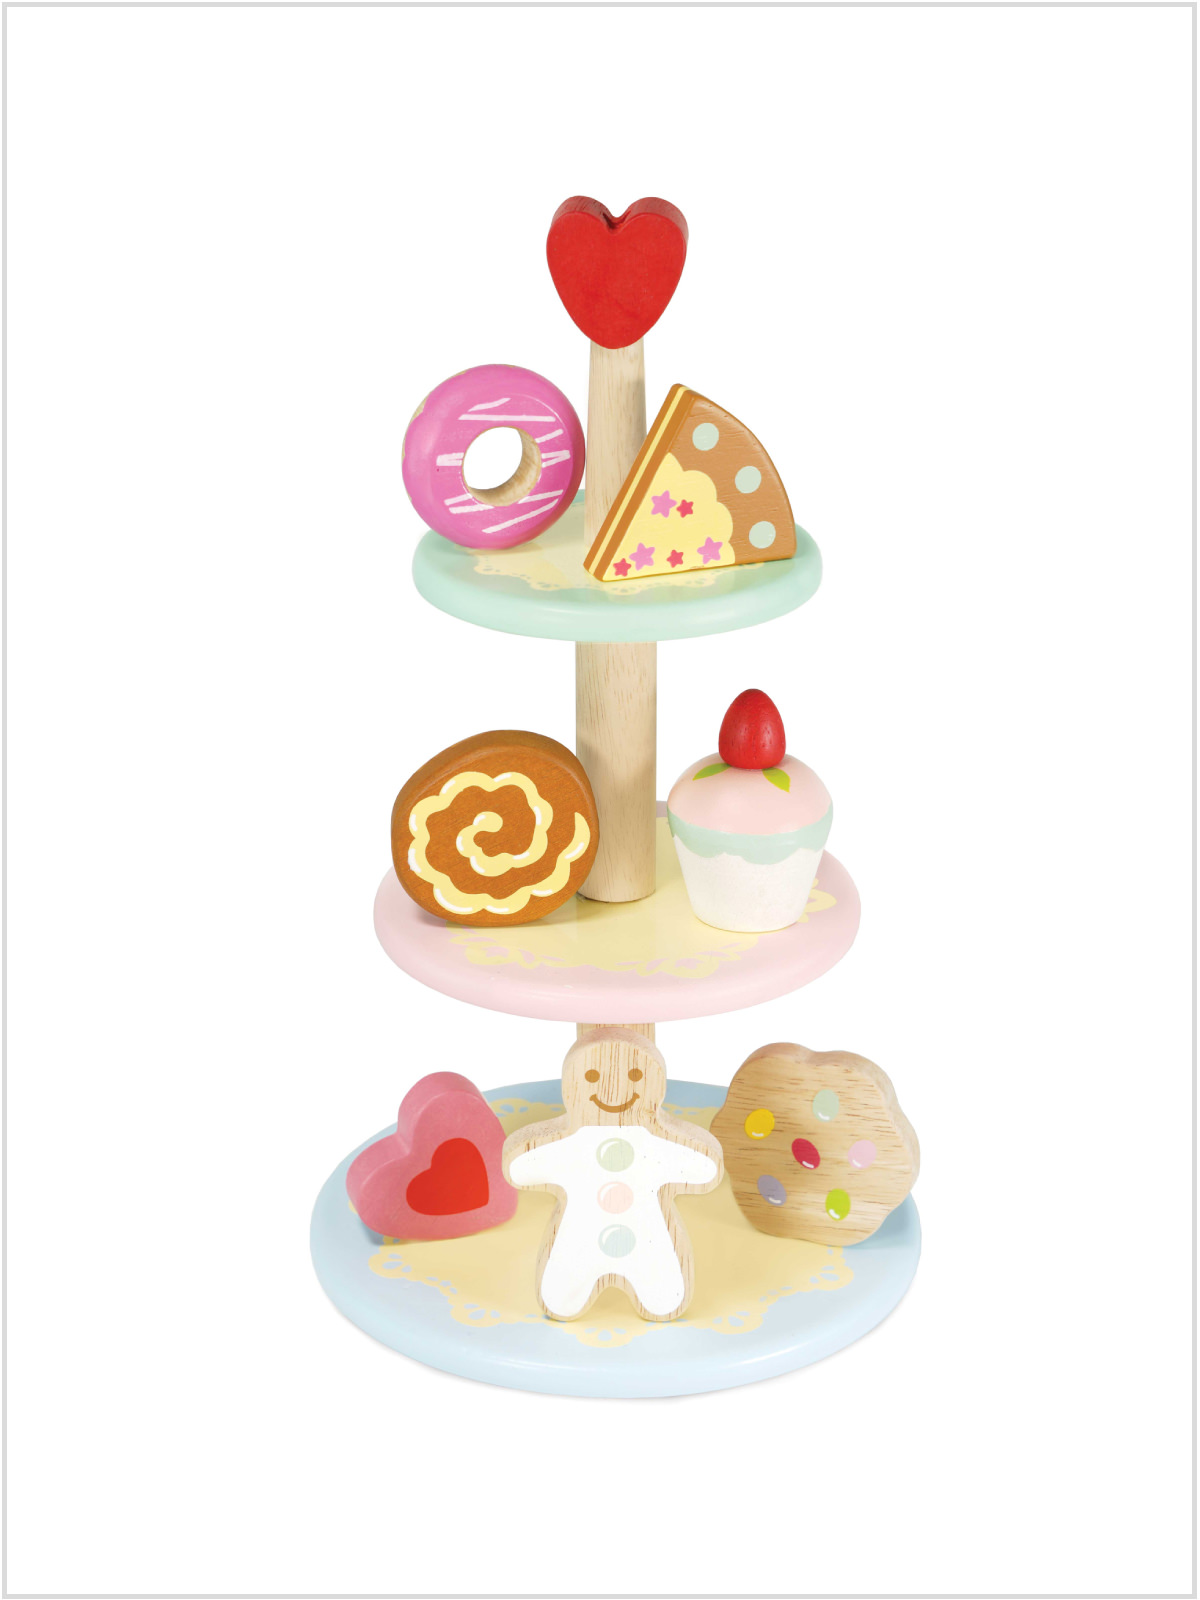 frederickandsophie-toys-letoyvan-honeybake-play-cake-stand-sweets